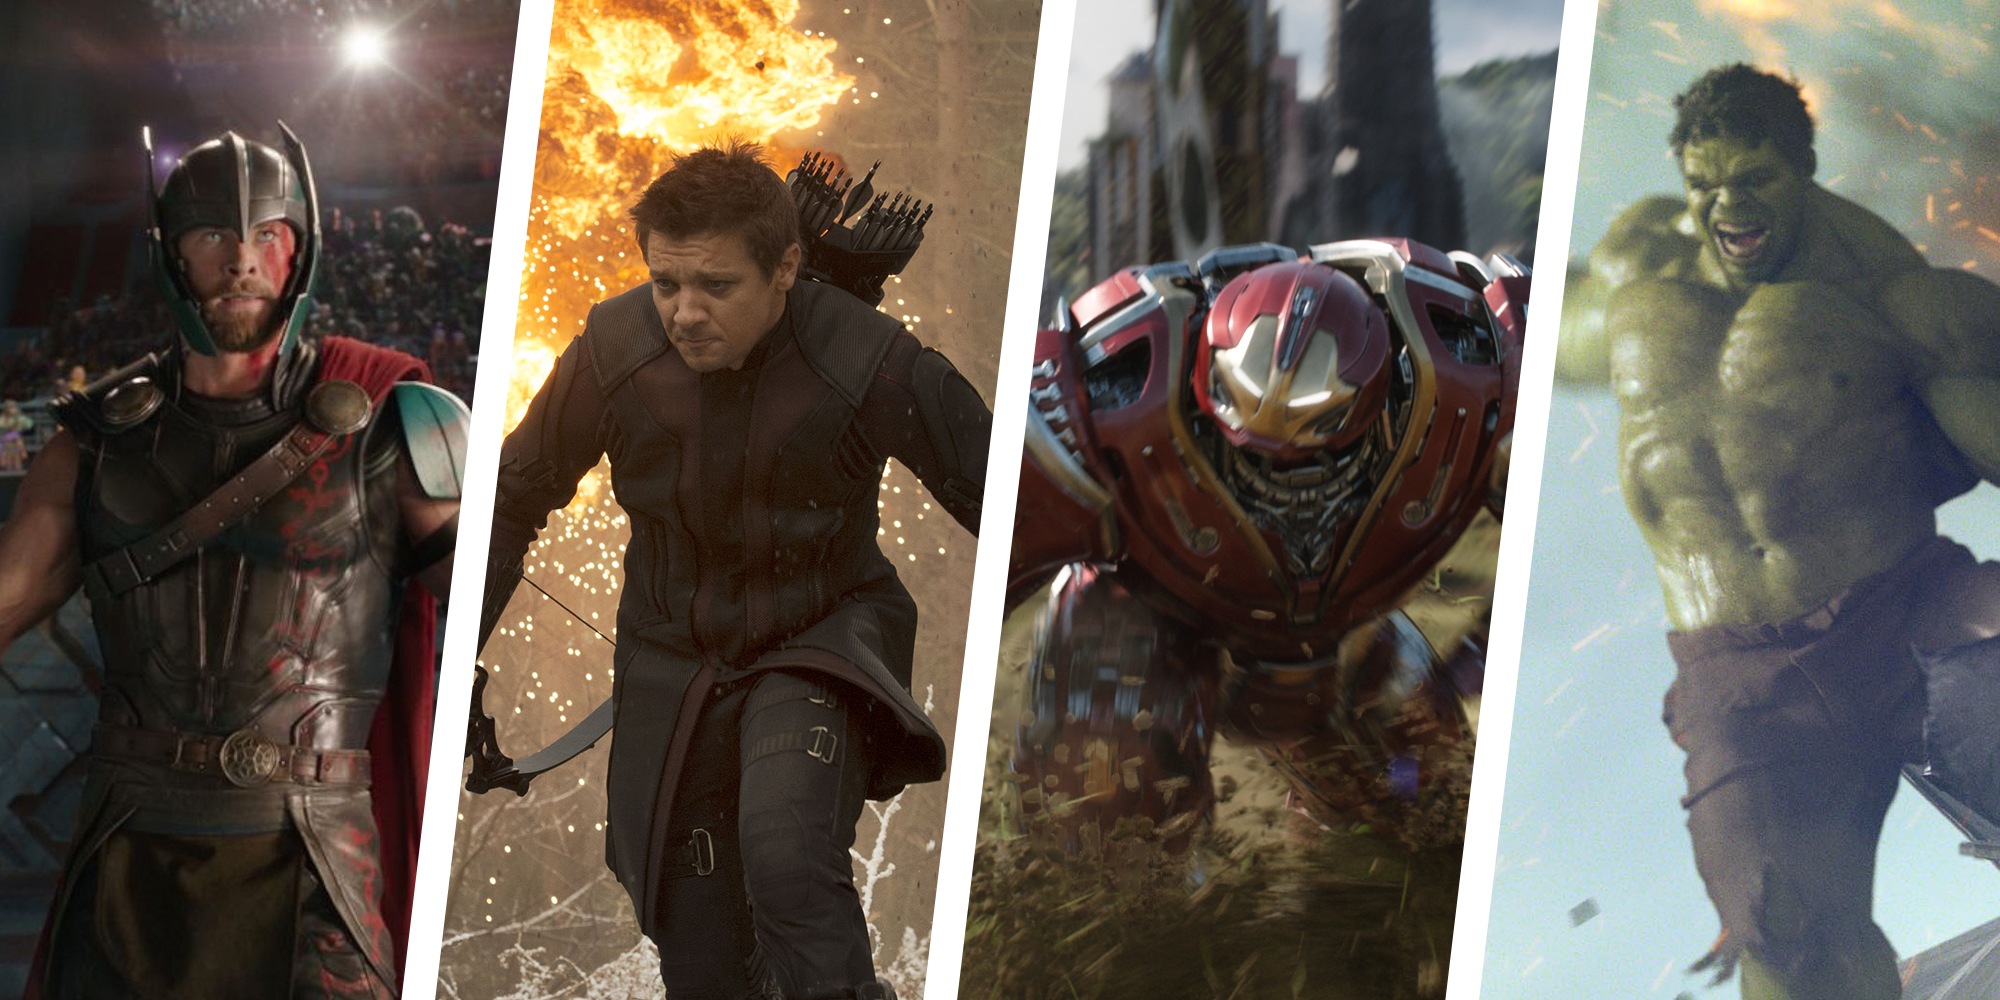 How much weight could the Avengers actually lift